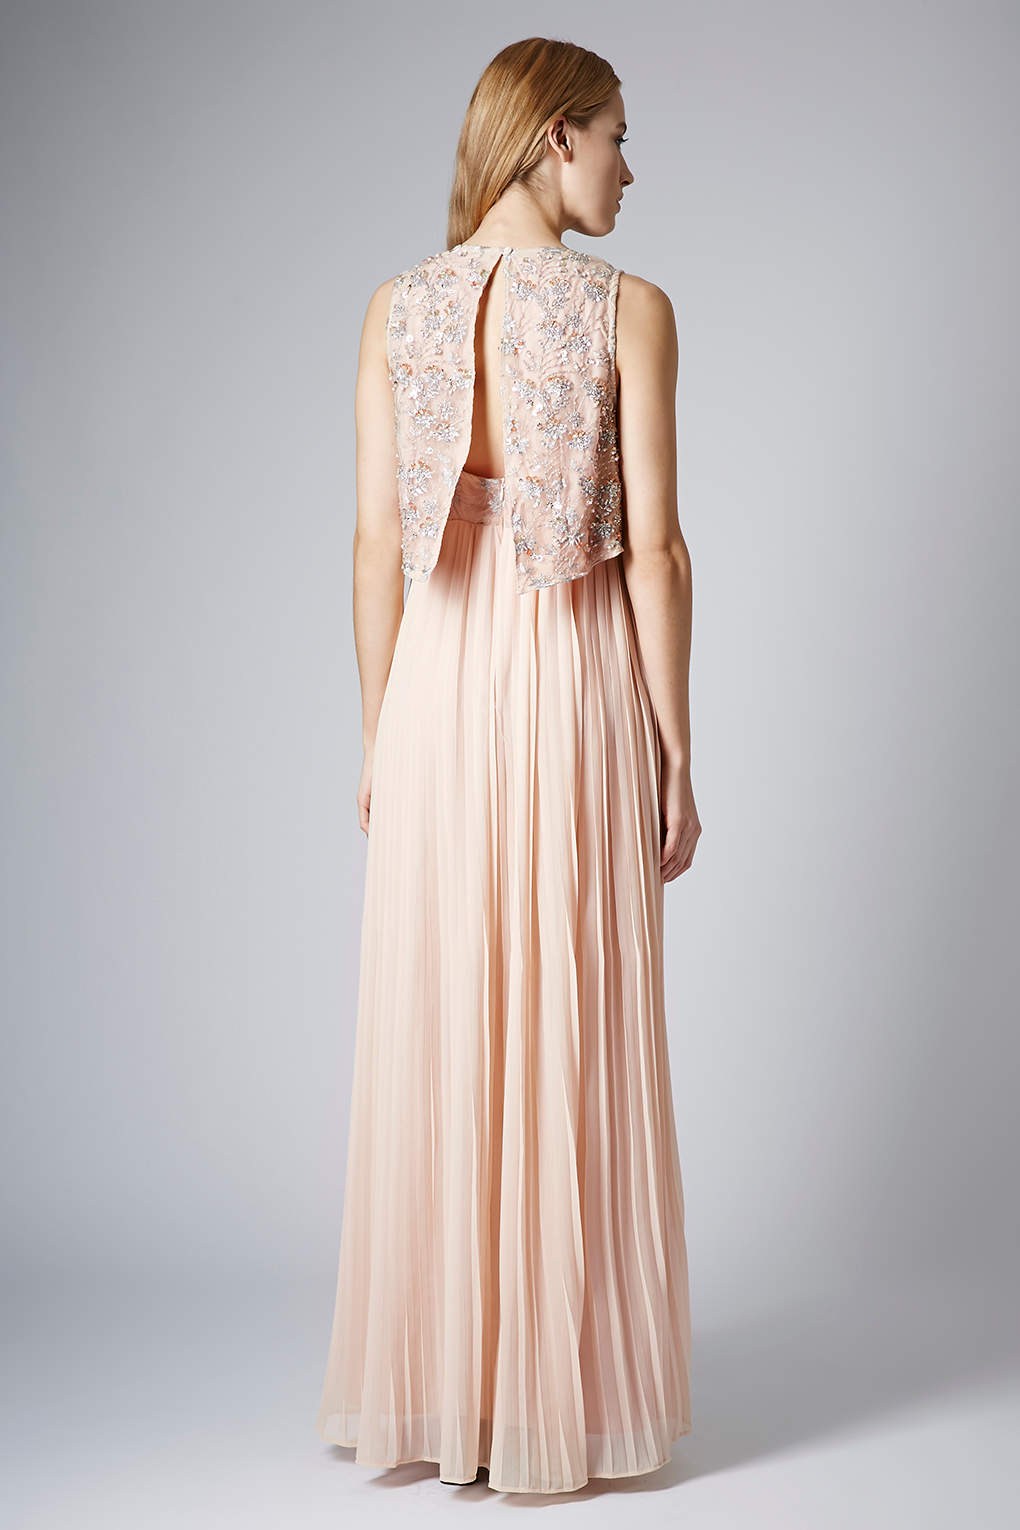 Lyst Topshop Limited Edition Pleated Embellished Maxi Dress In Pink